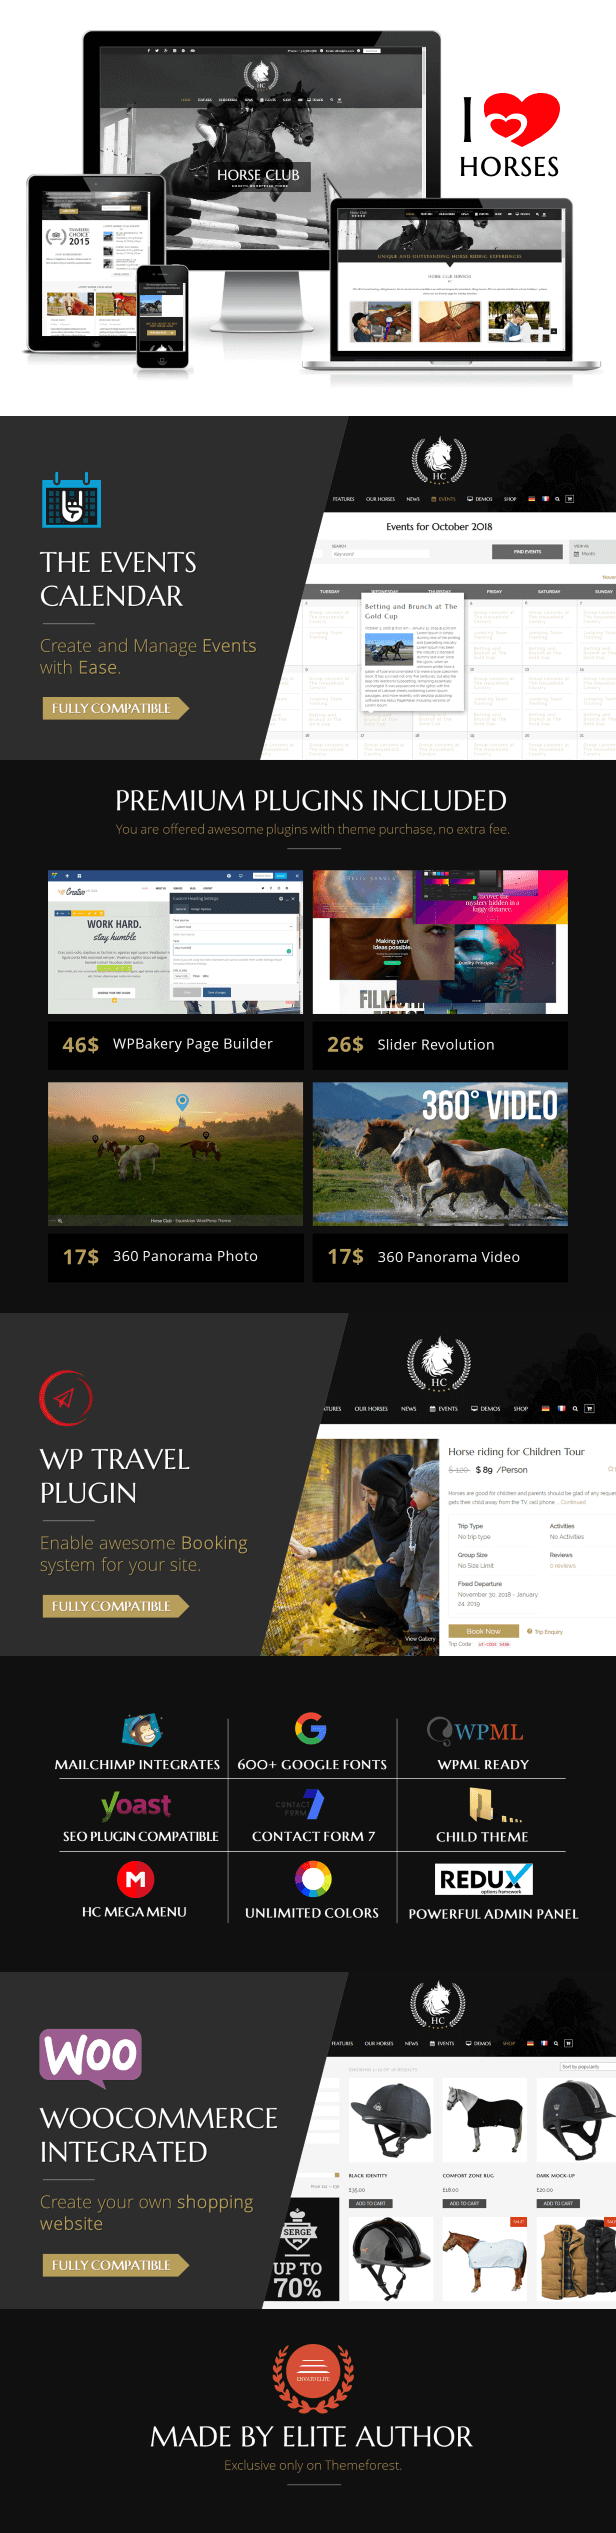 Horse Club - Equestrian WordPress Theme is made for riding stables, equestrian associations, horse riding, horse booking tour, lessons, horse school, equestrian centre, stable management,